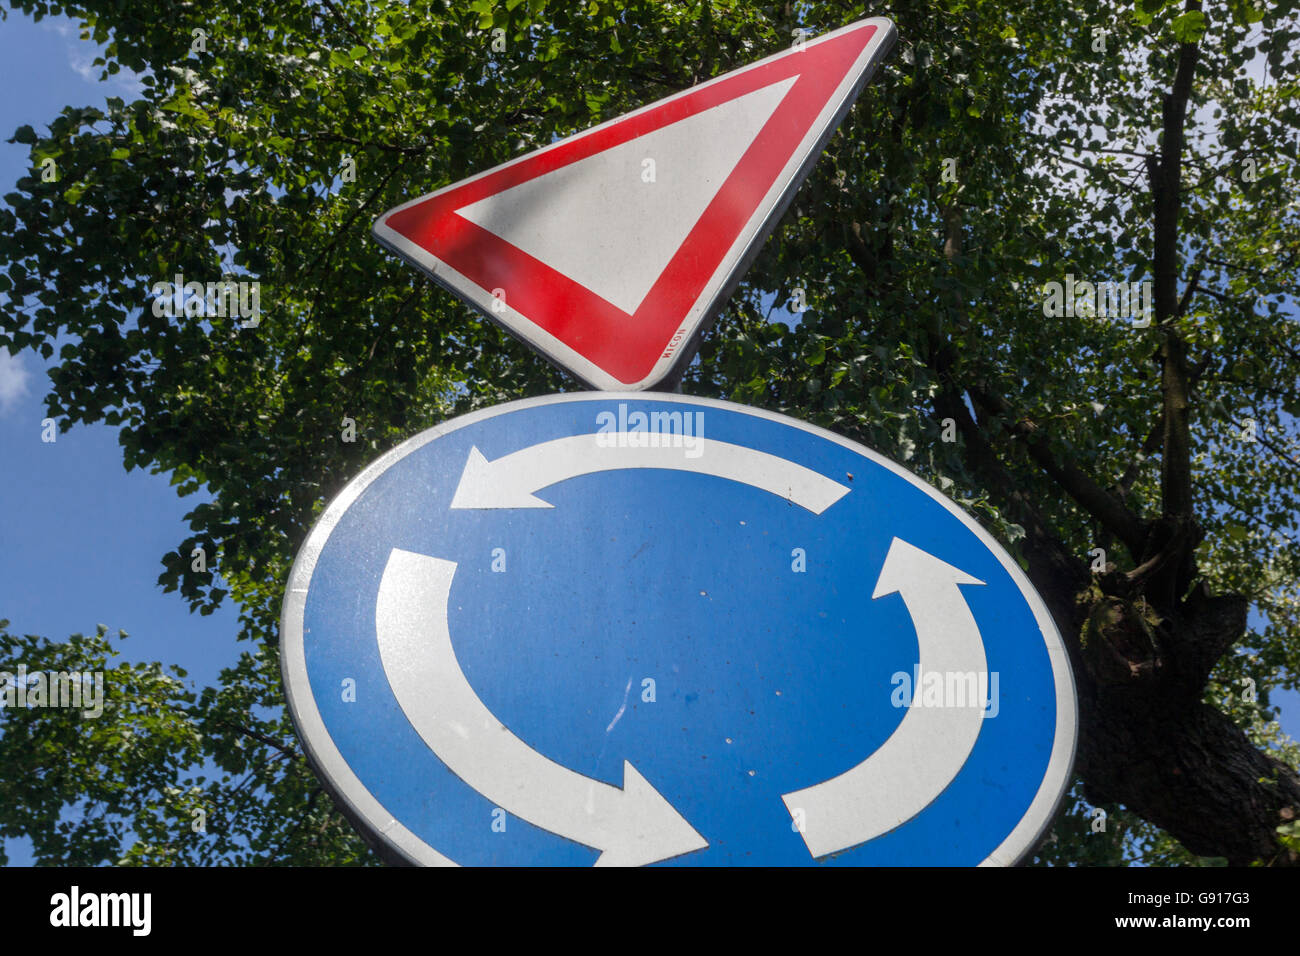 Traffic signs, roundabout - Stock Image